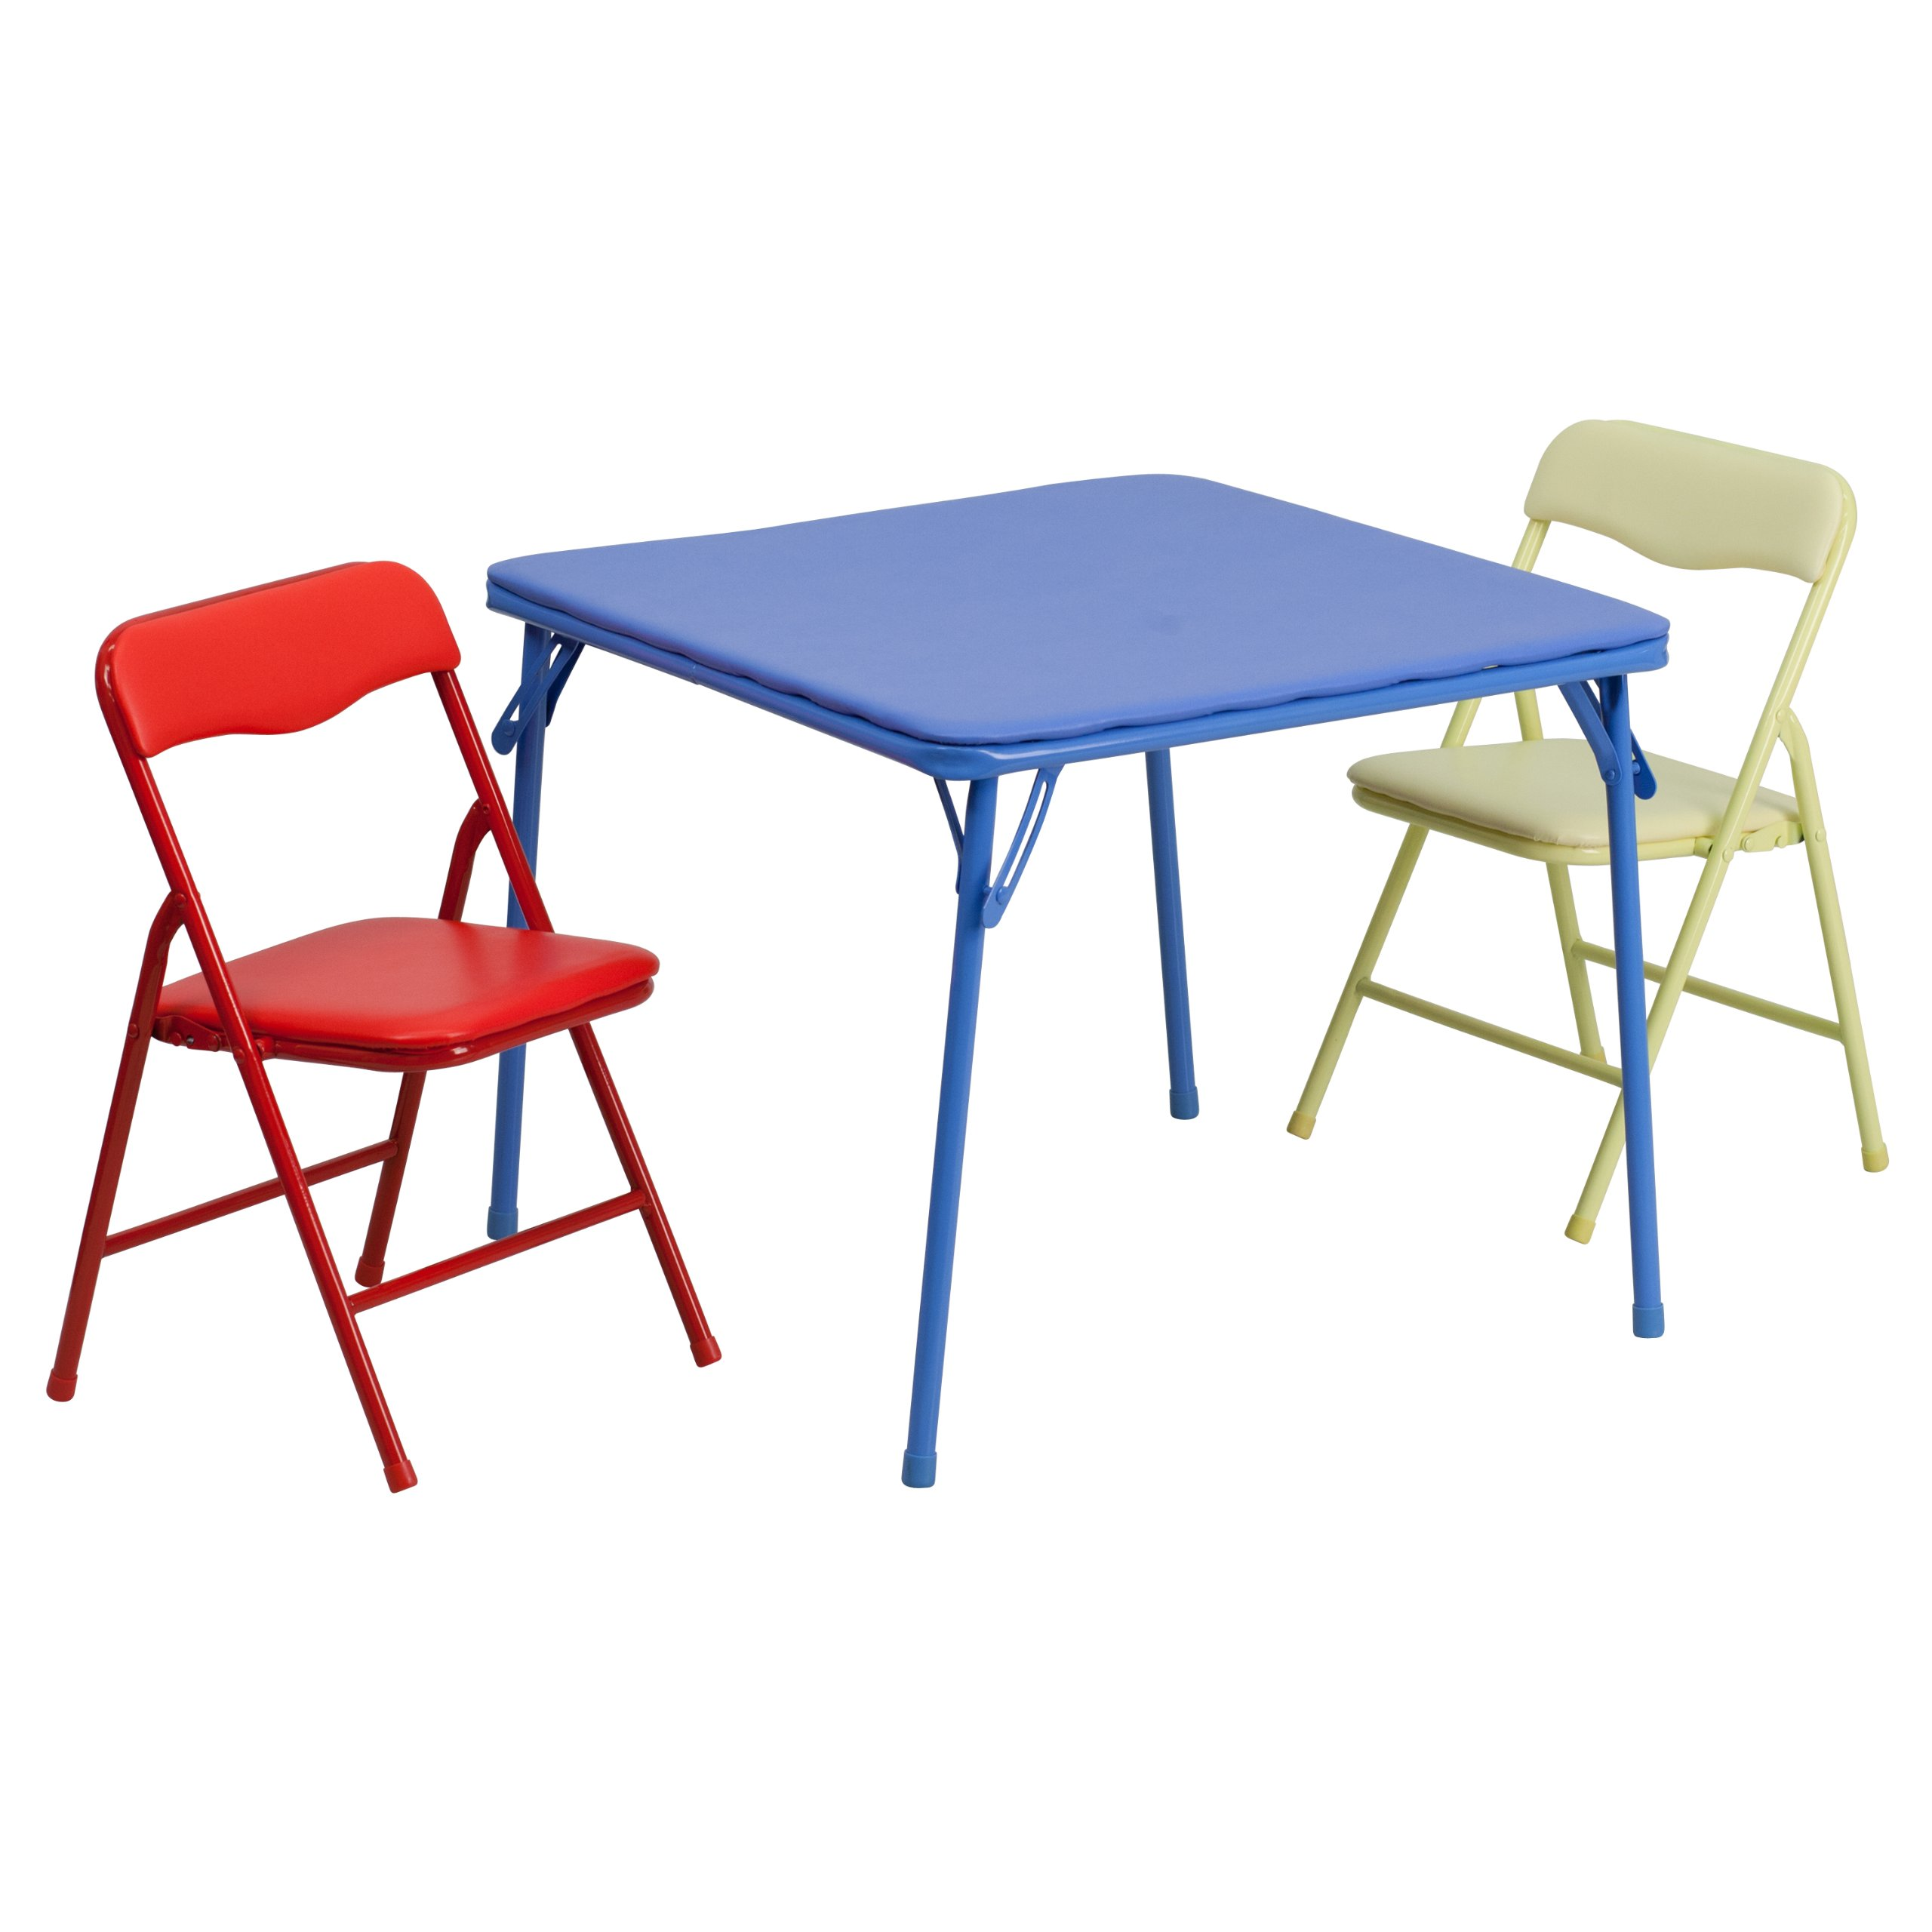 Flash Furniture Kids Colorful 3-Piece Folding Table and Chair Set by Flash Furniture